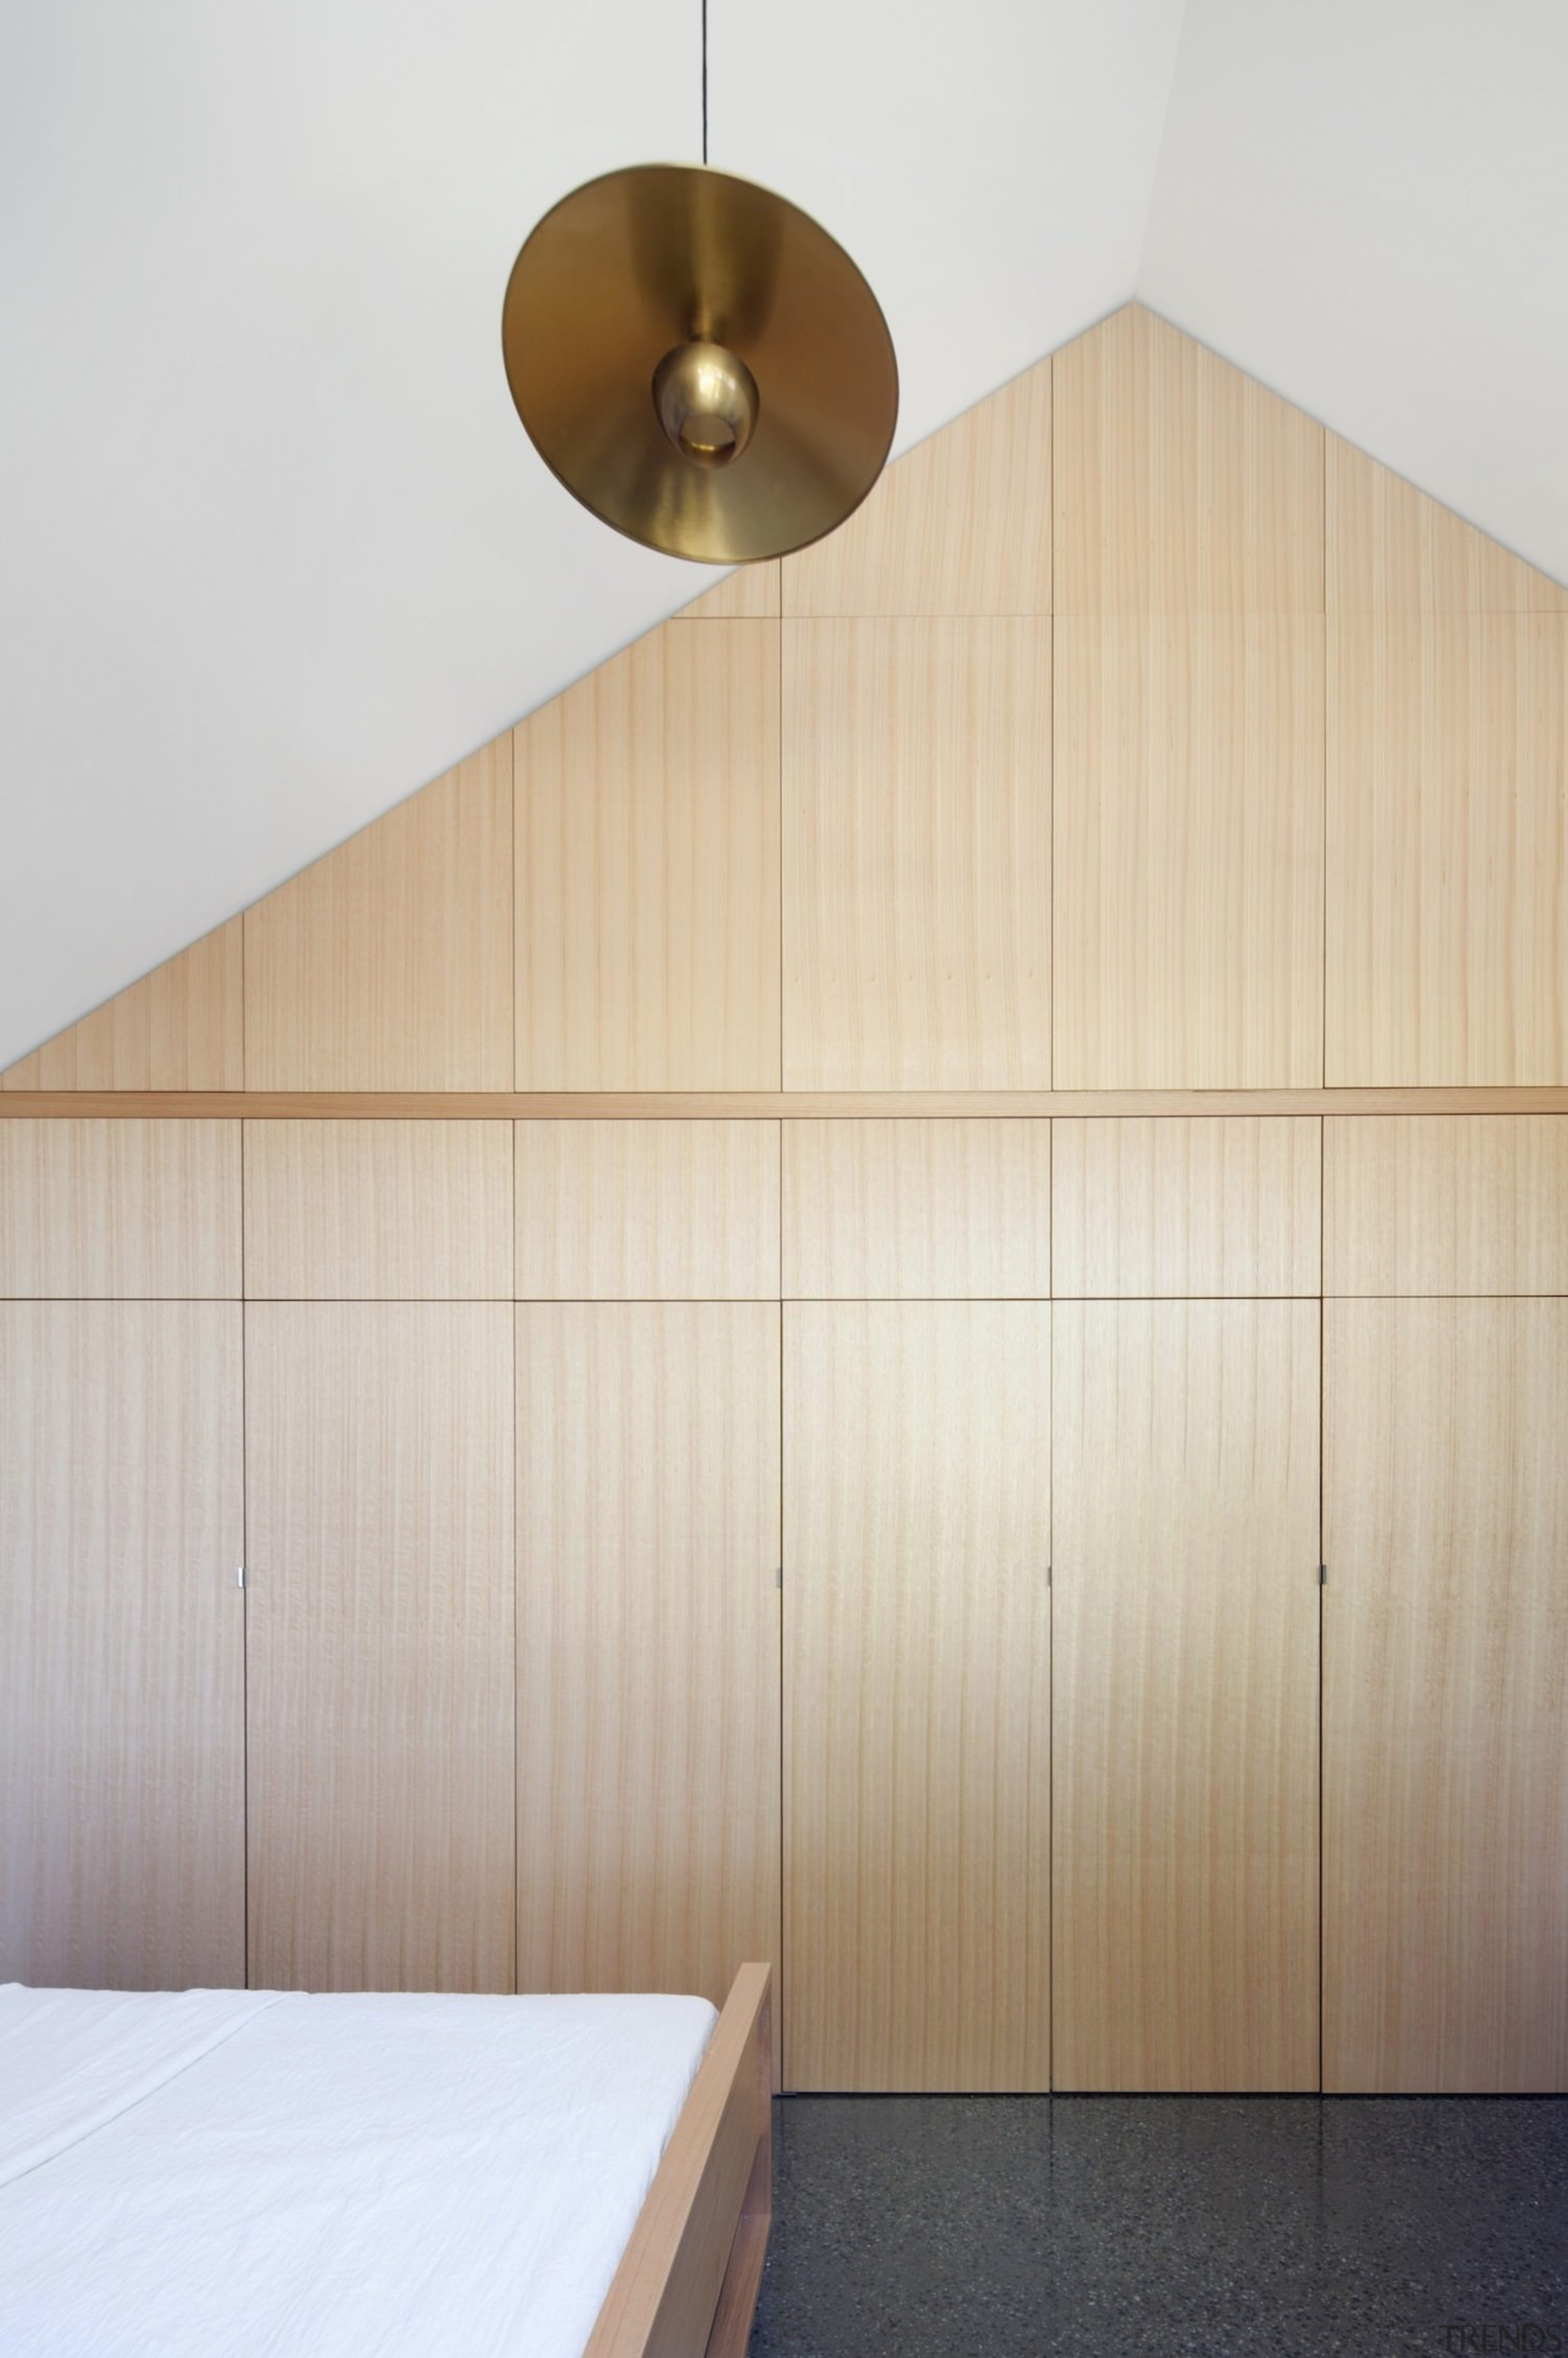 Architect: Steffen Welsch ArchitectsPhotography by Shannon McGrath architecture, ceiling, interior design, lighting, plywood, product design, wall, wood, gray